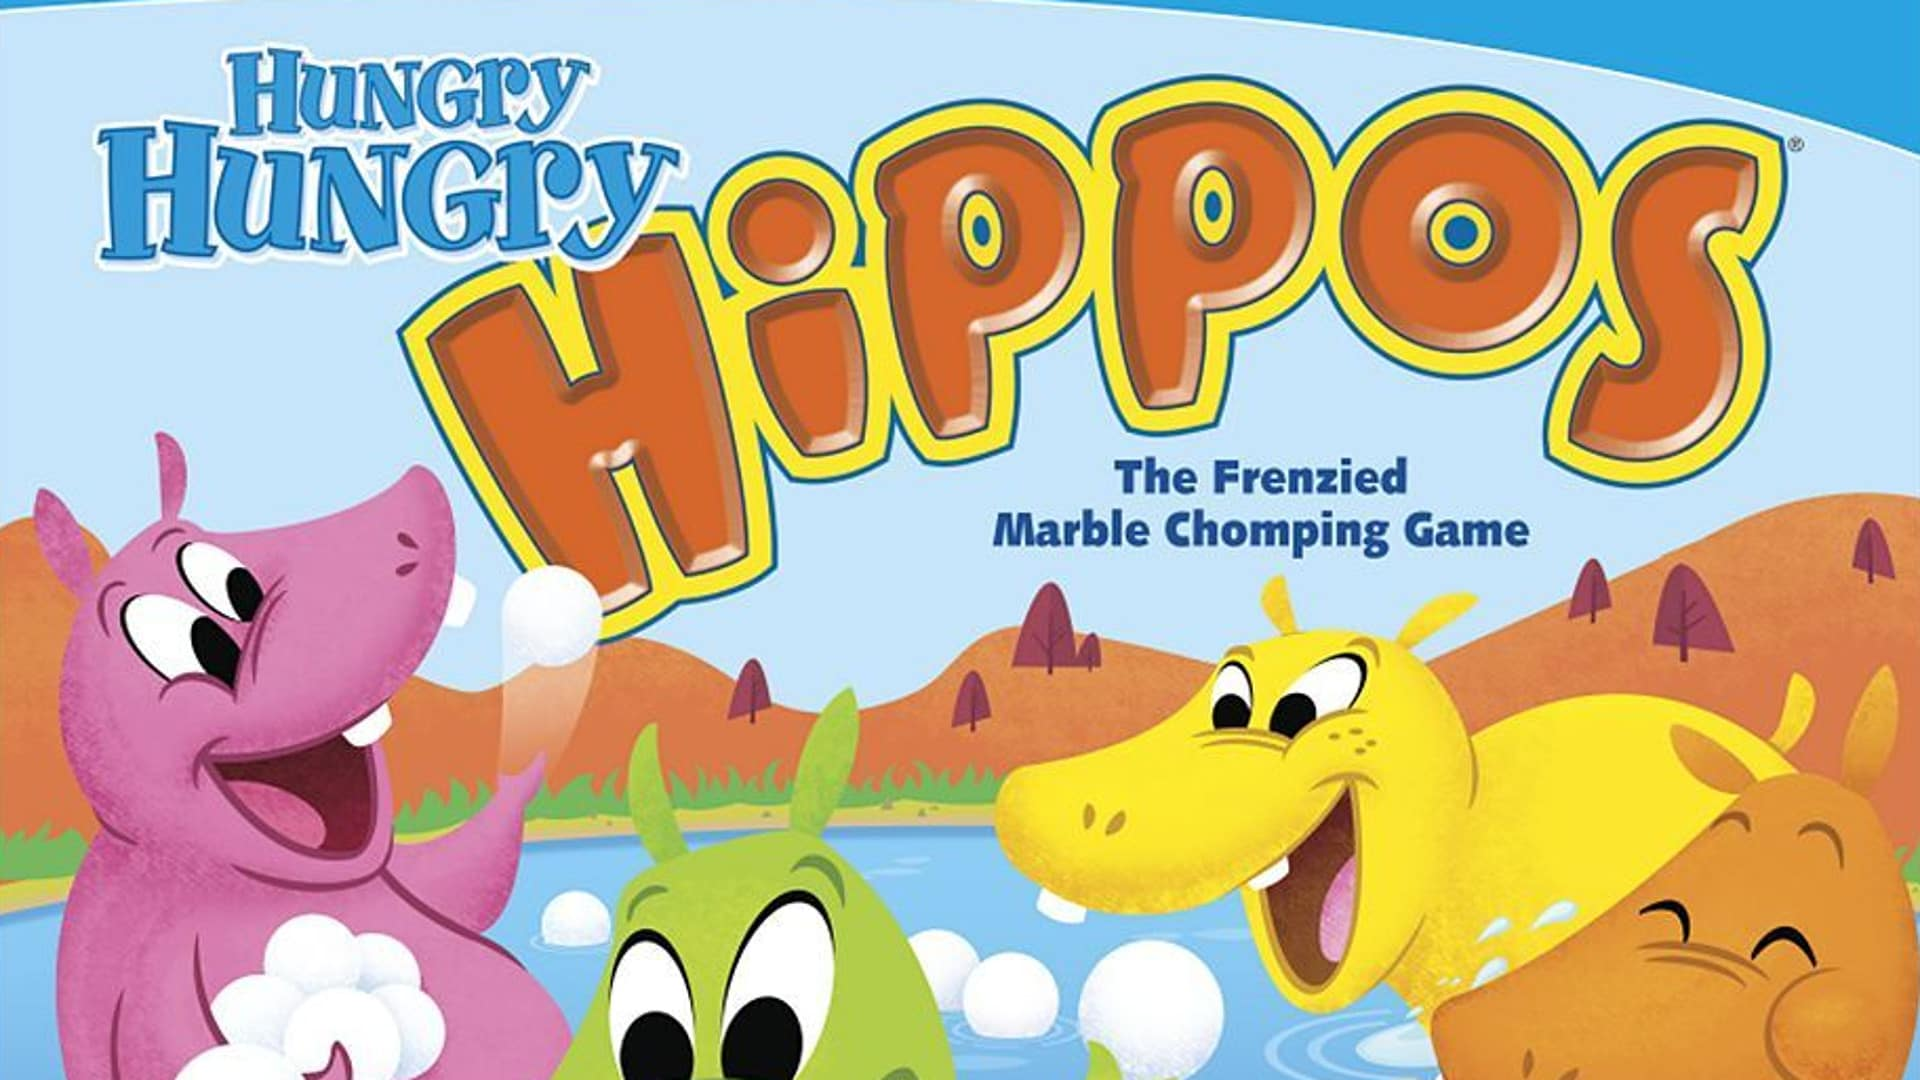 Hungry Hungry Hippos Game Rules and How to Play Guide